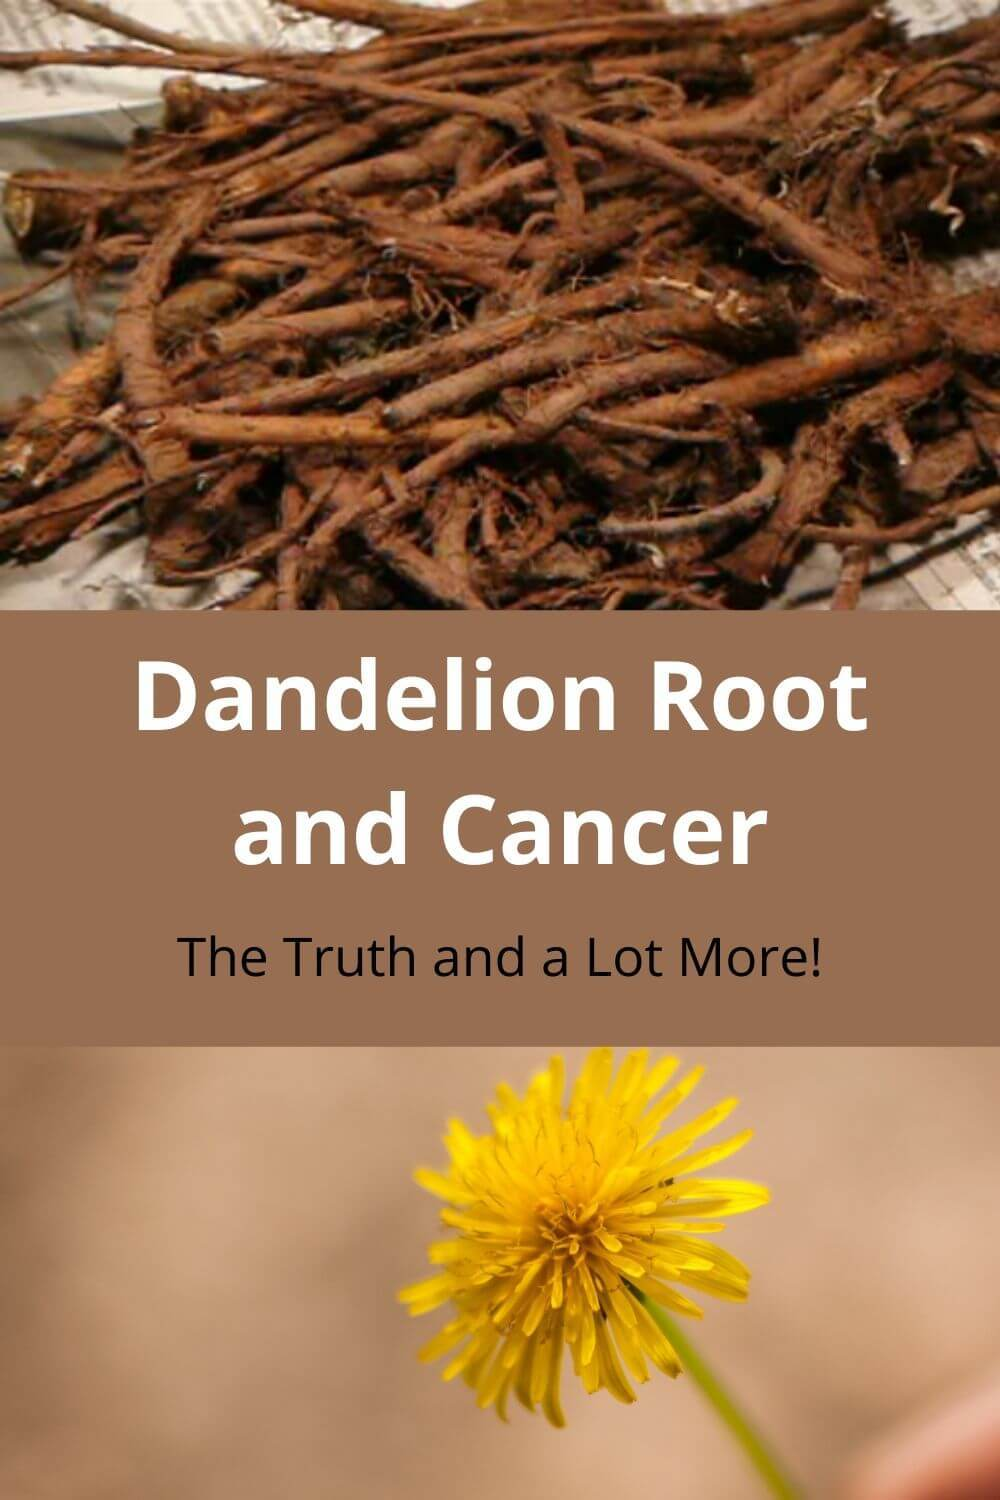 Dandelion Root and Cancer